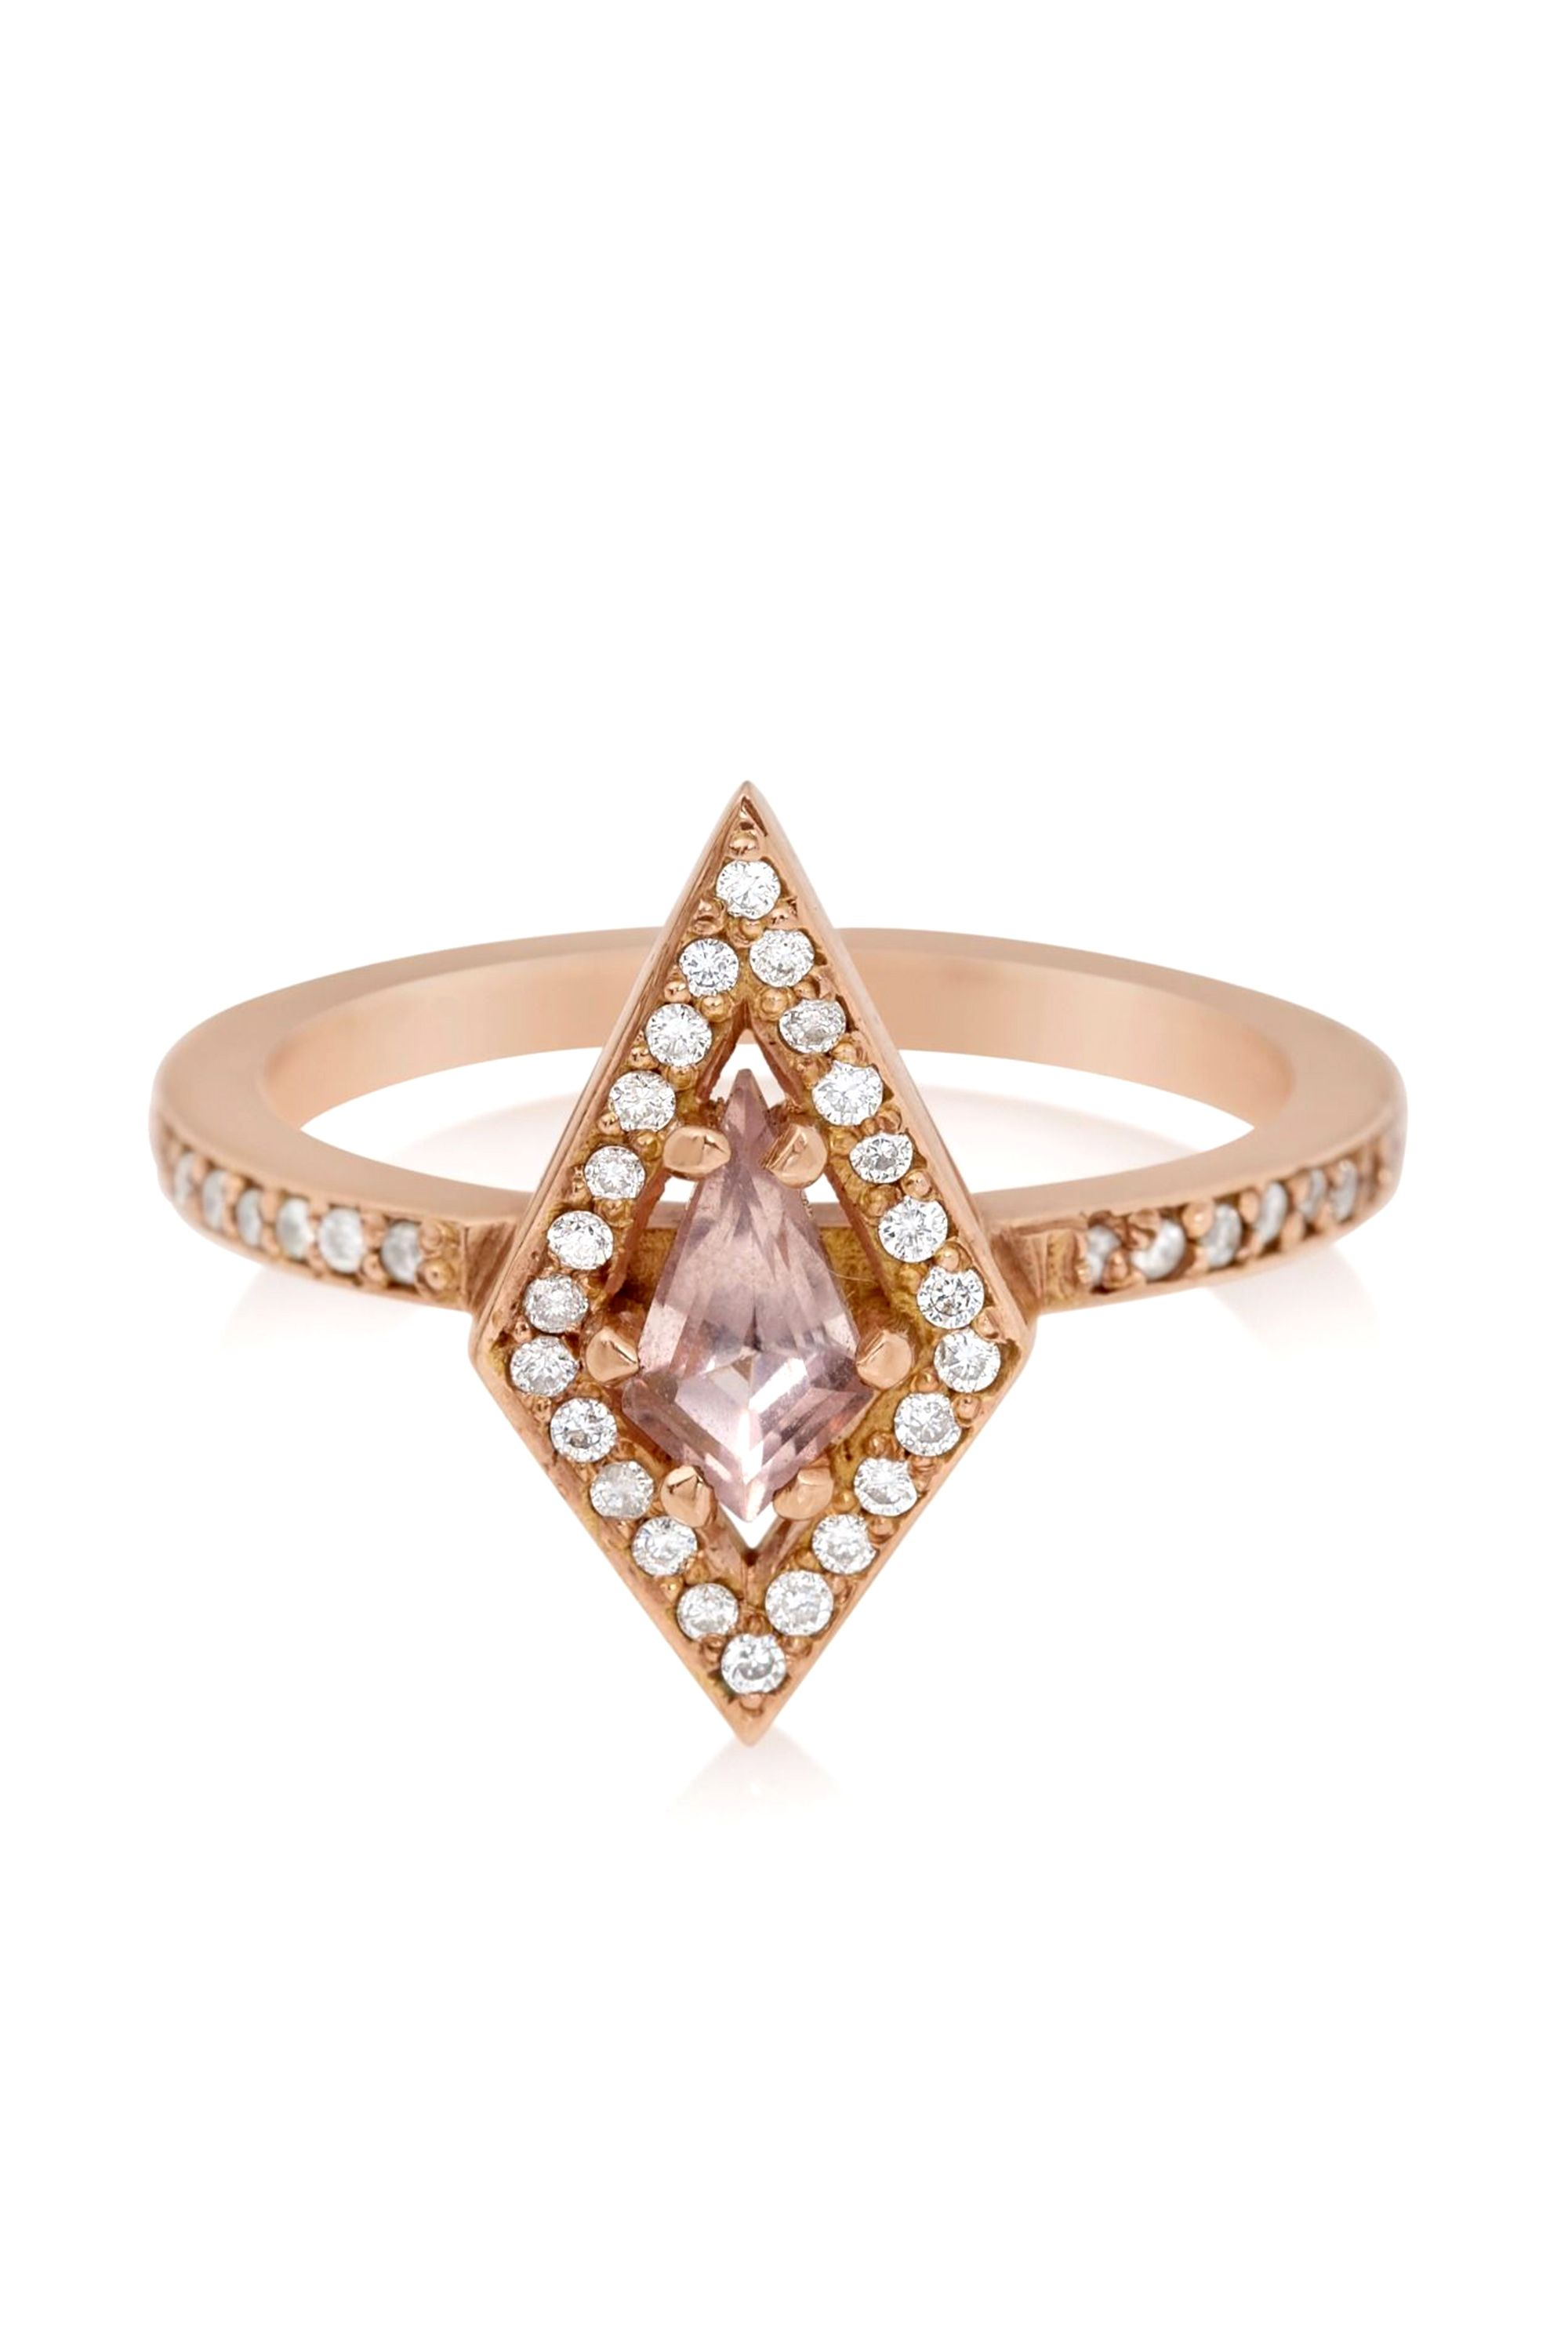 "<p>Meadowlark Kite Engagement Ring, $3,030; <a href=""http://www.stoneandstrand.com/jewelry/rings/meadowlark-9k-rose-gold-kite-engagement-ring"" target=""_blank"">stoneandstrand.com</a></p>"